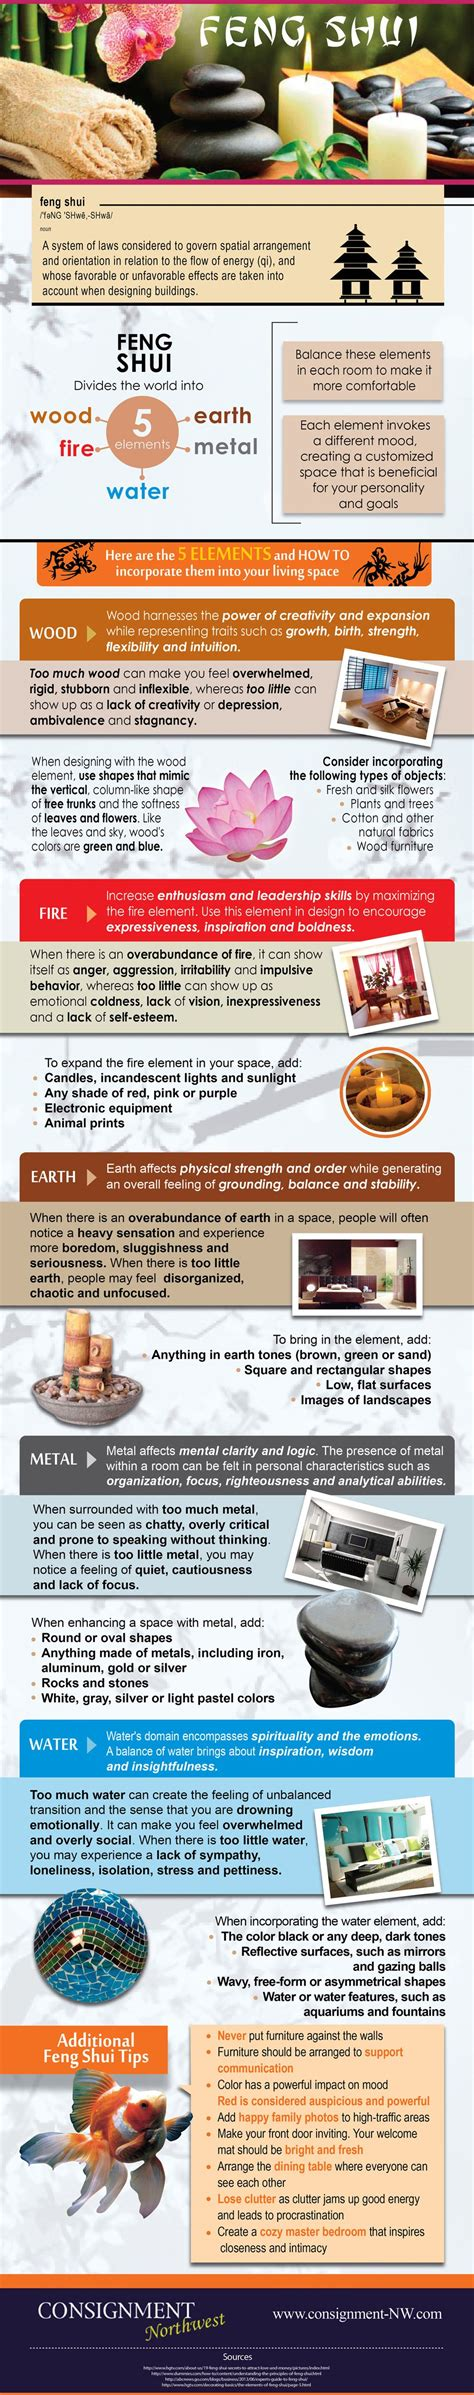 traditional feng shui traditional feng shui divides the world into 5 elements